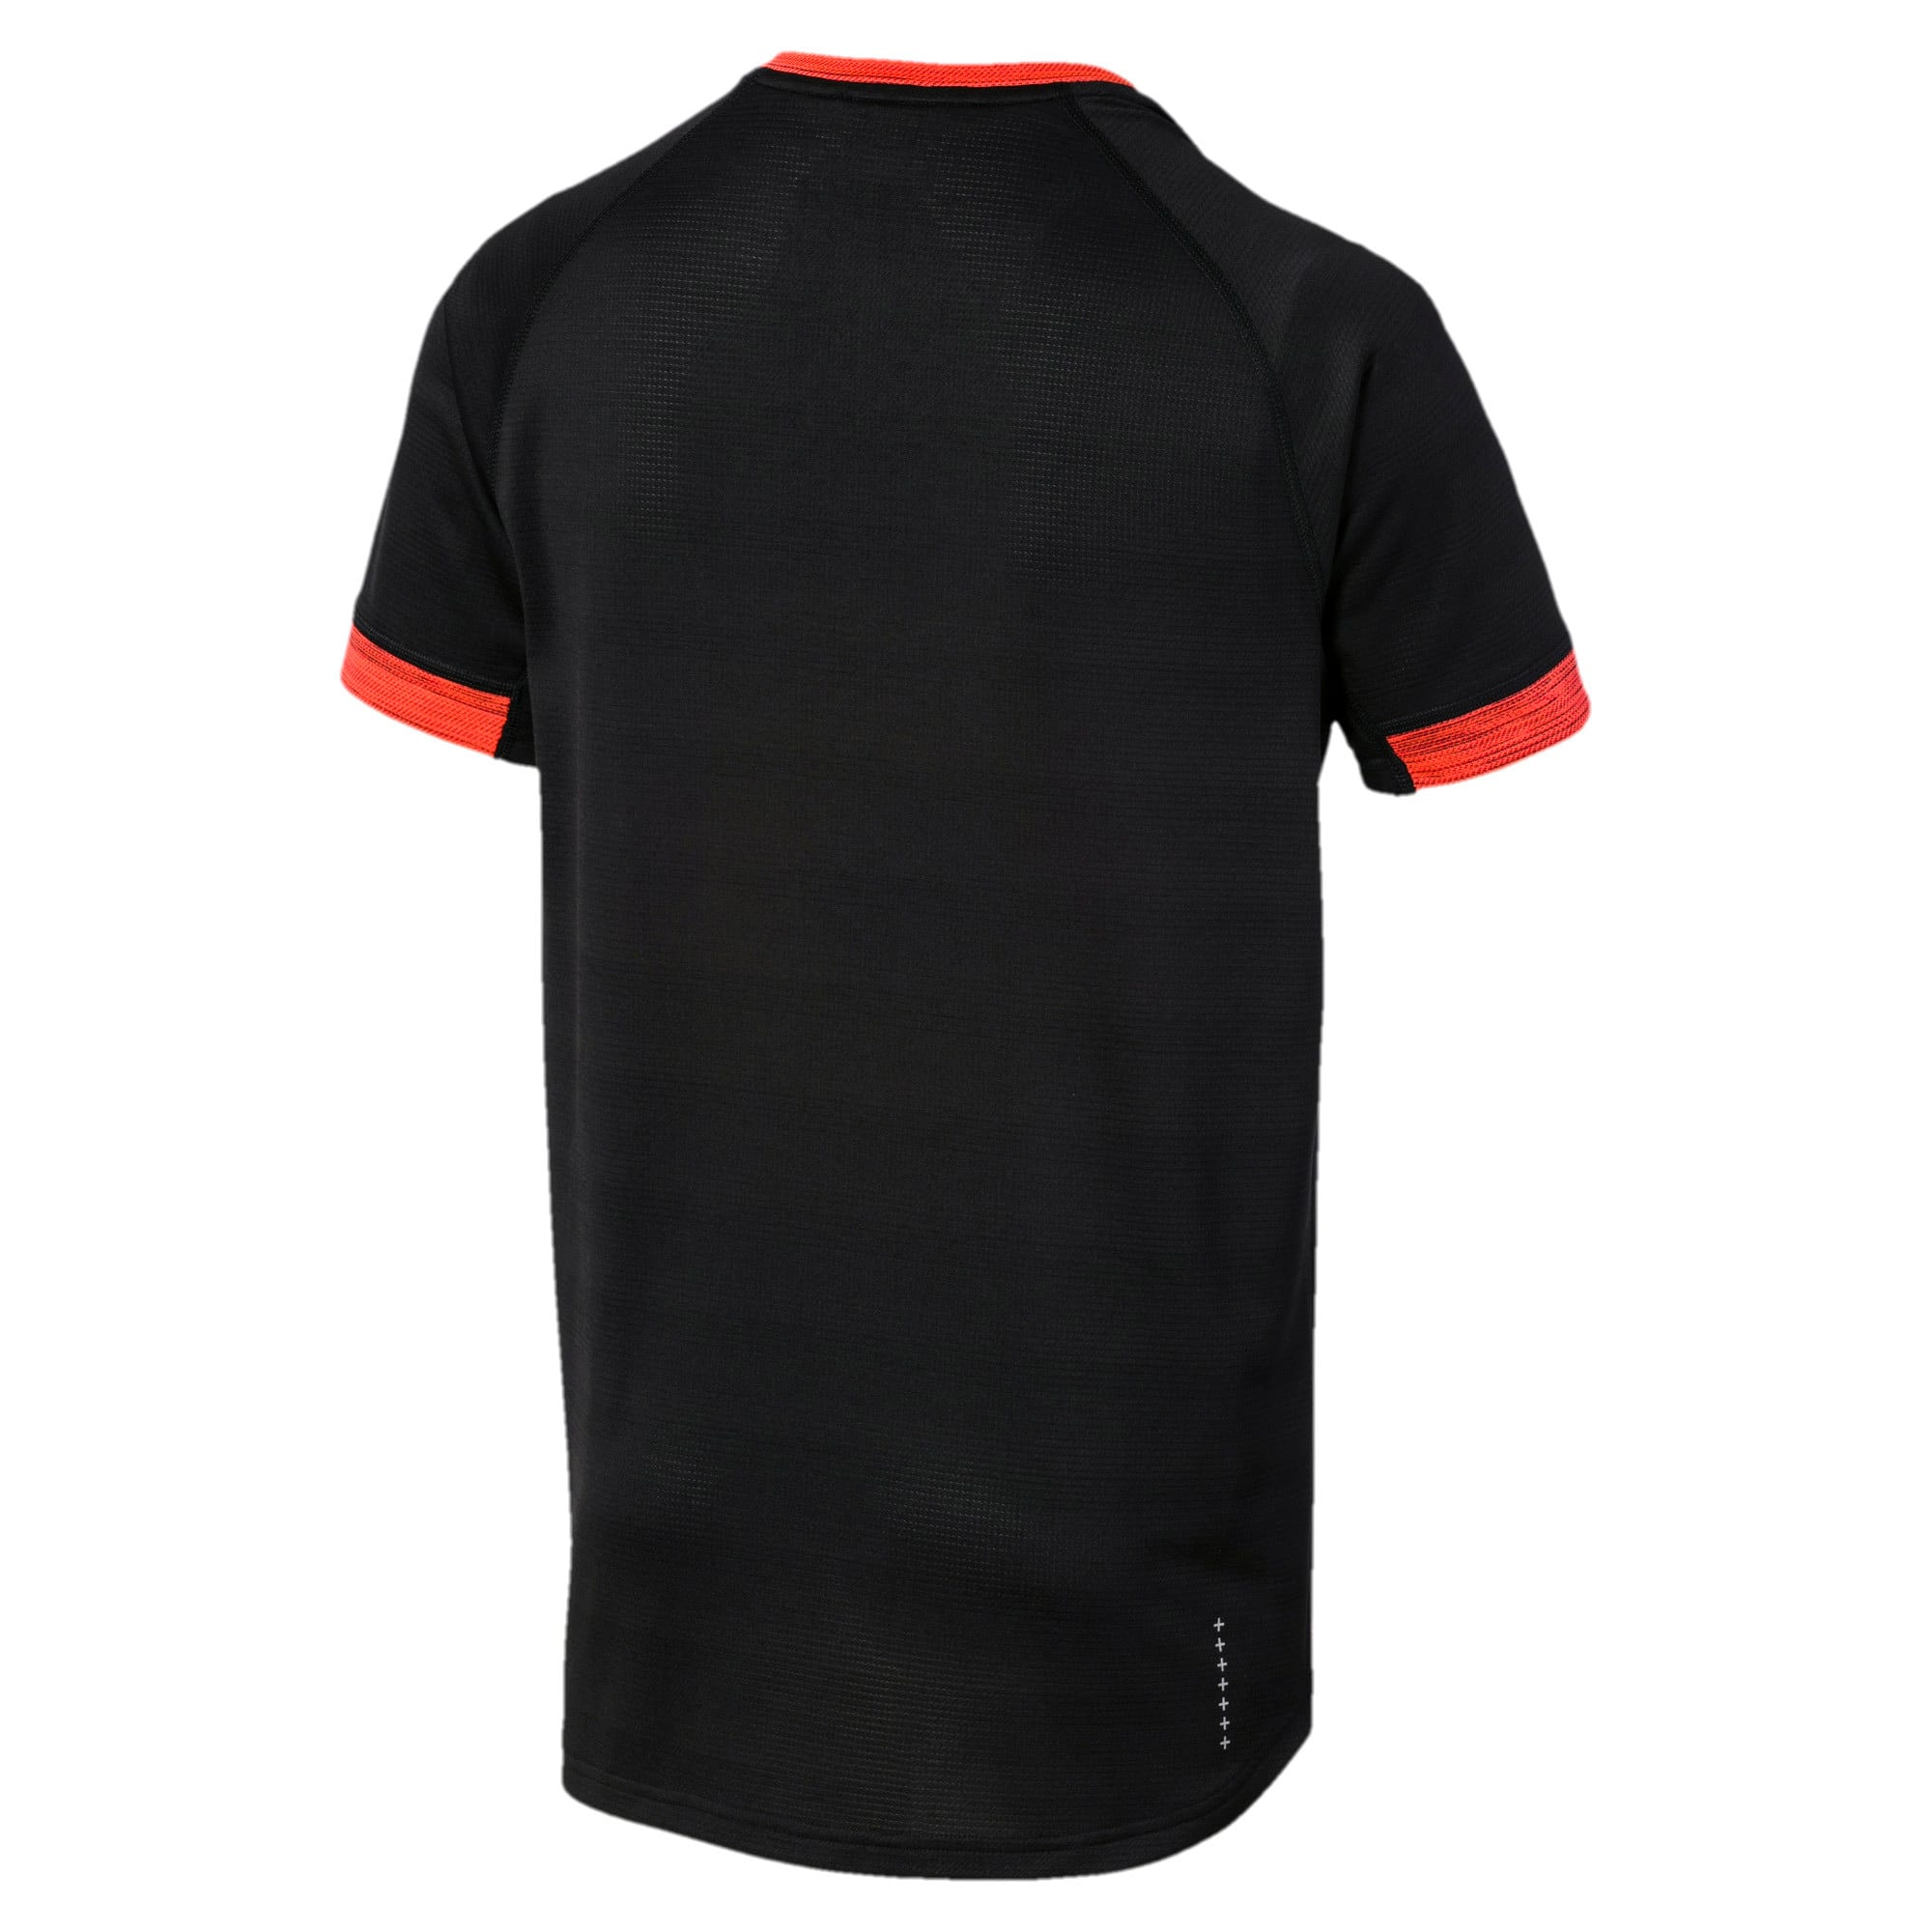 Thumbnail 5 of Get Fast THERMO R+ Men's Running Tee, Black Htr-Nrgy Red Htr, medium-IND